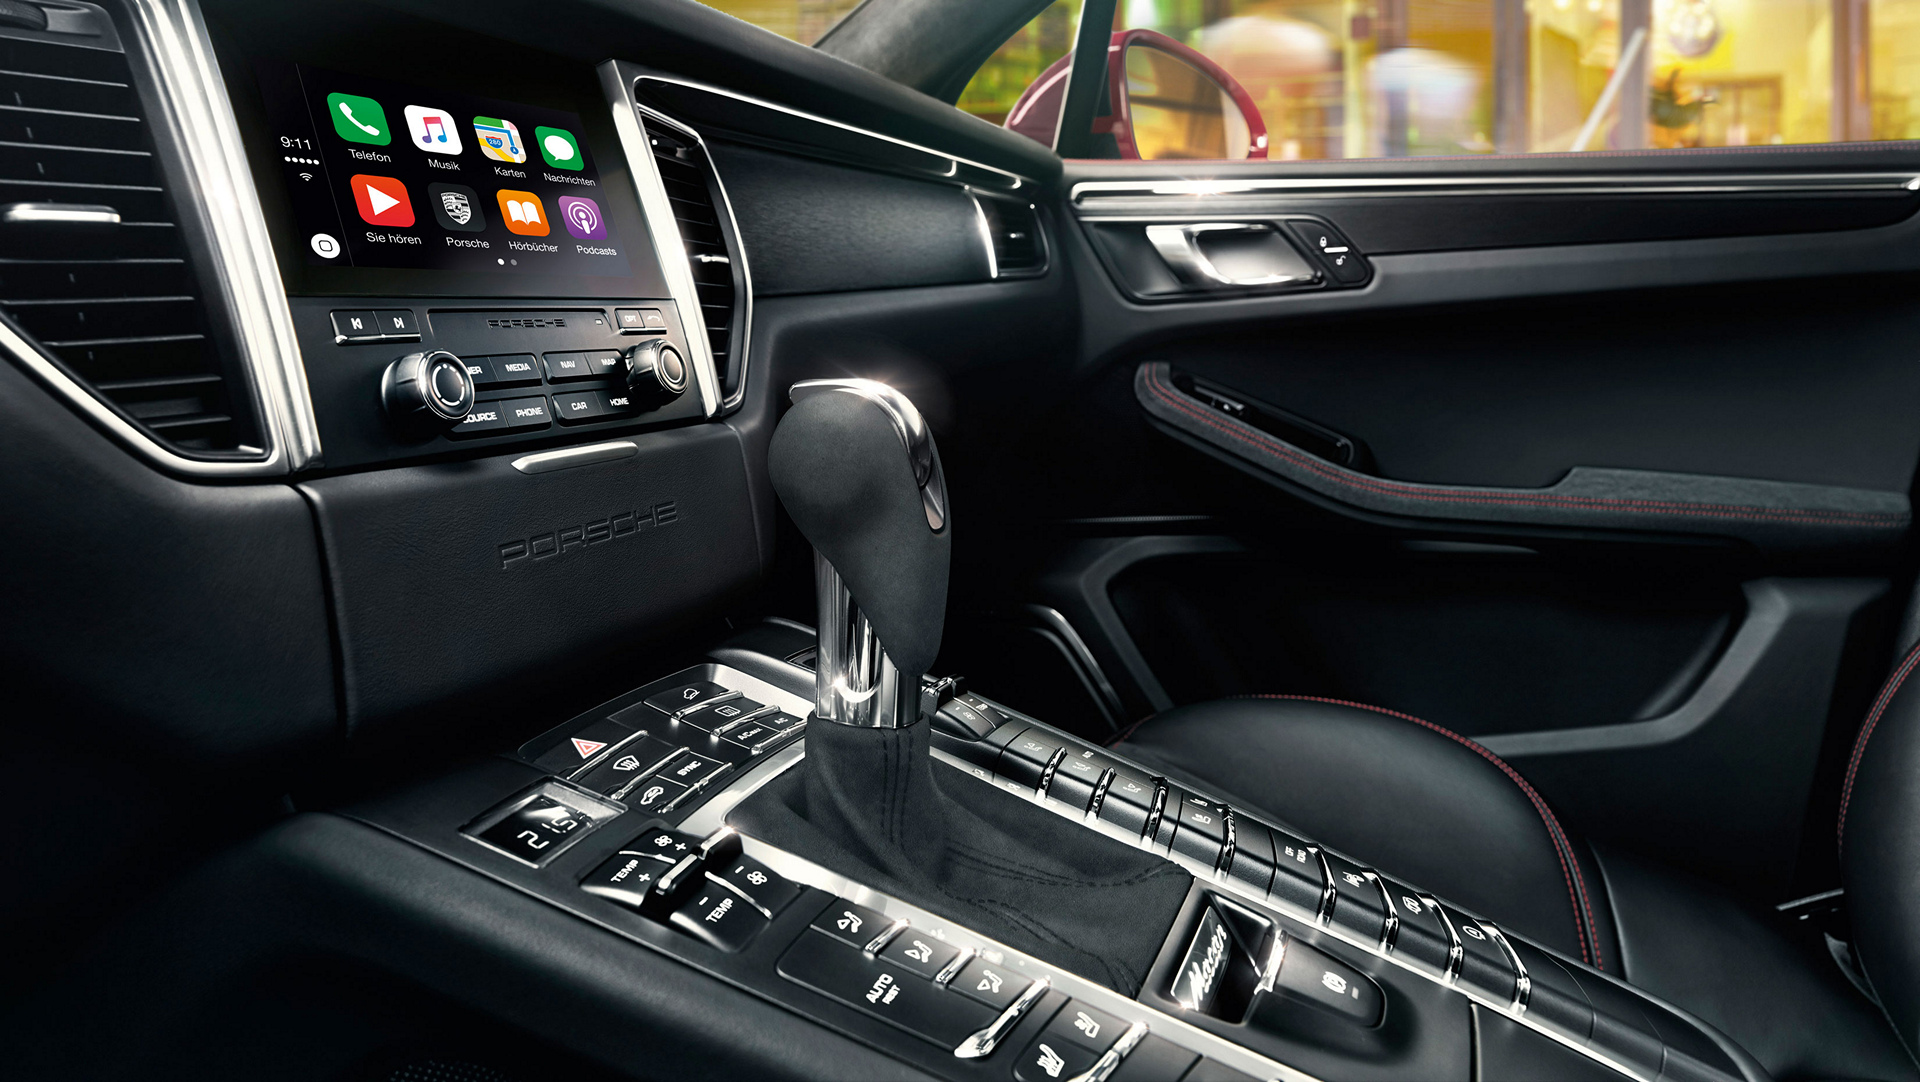 Apple CarPlay, Porsche Connect © Dr. Ing. h.c. F. Porsche AG